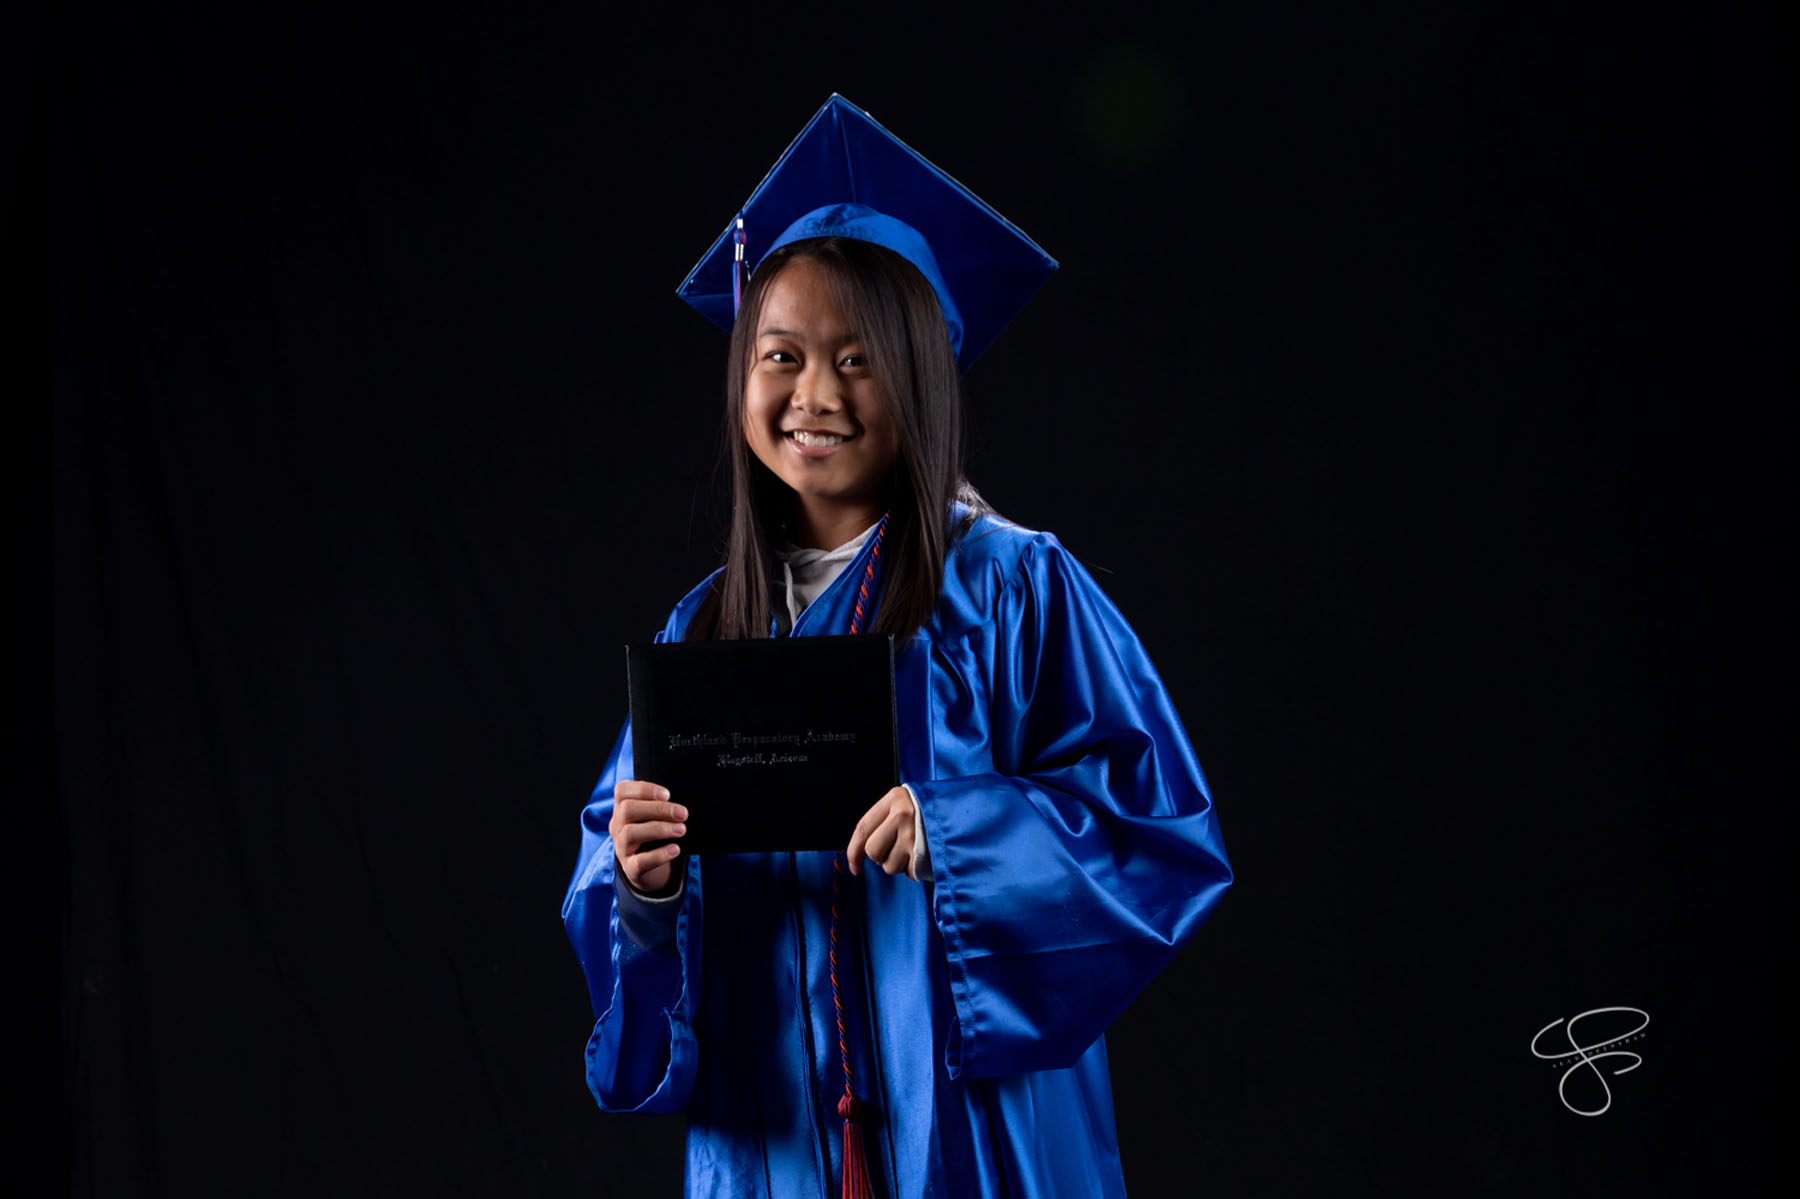 Northland Preparatory Academy's Class of 2019. Photo by Sean Openshaw / www.SeanOpenshaw.com